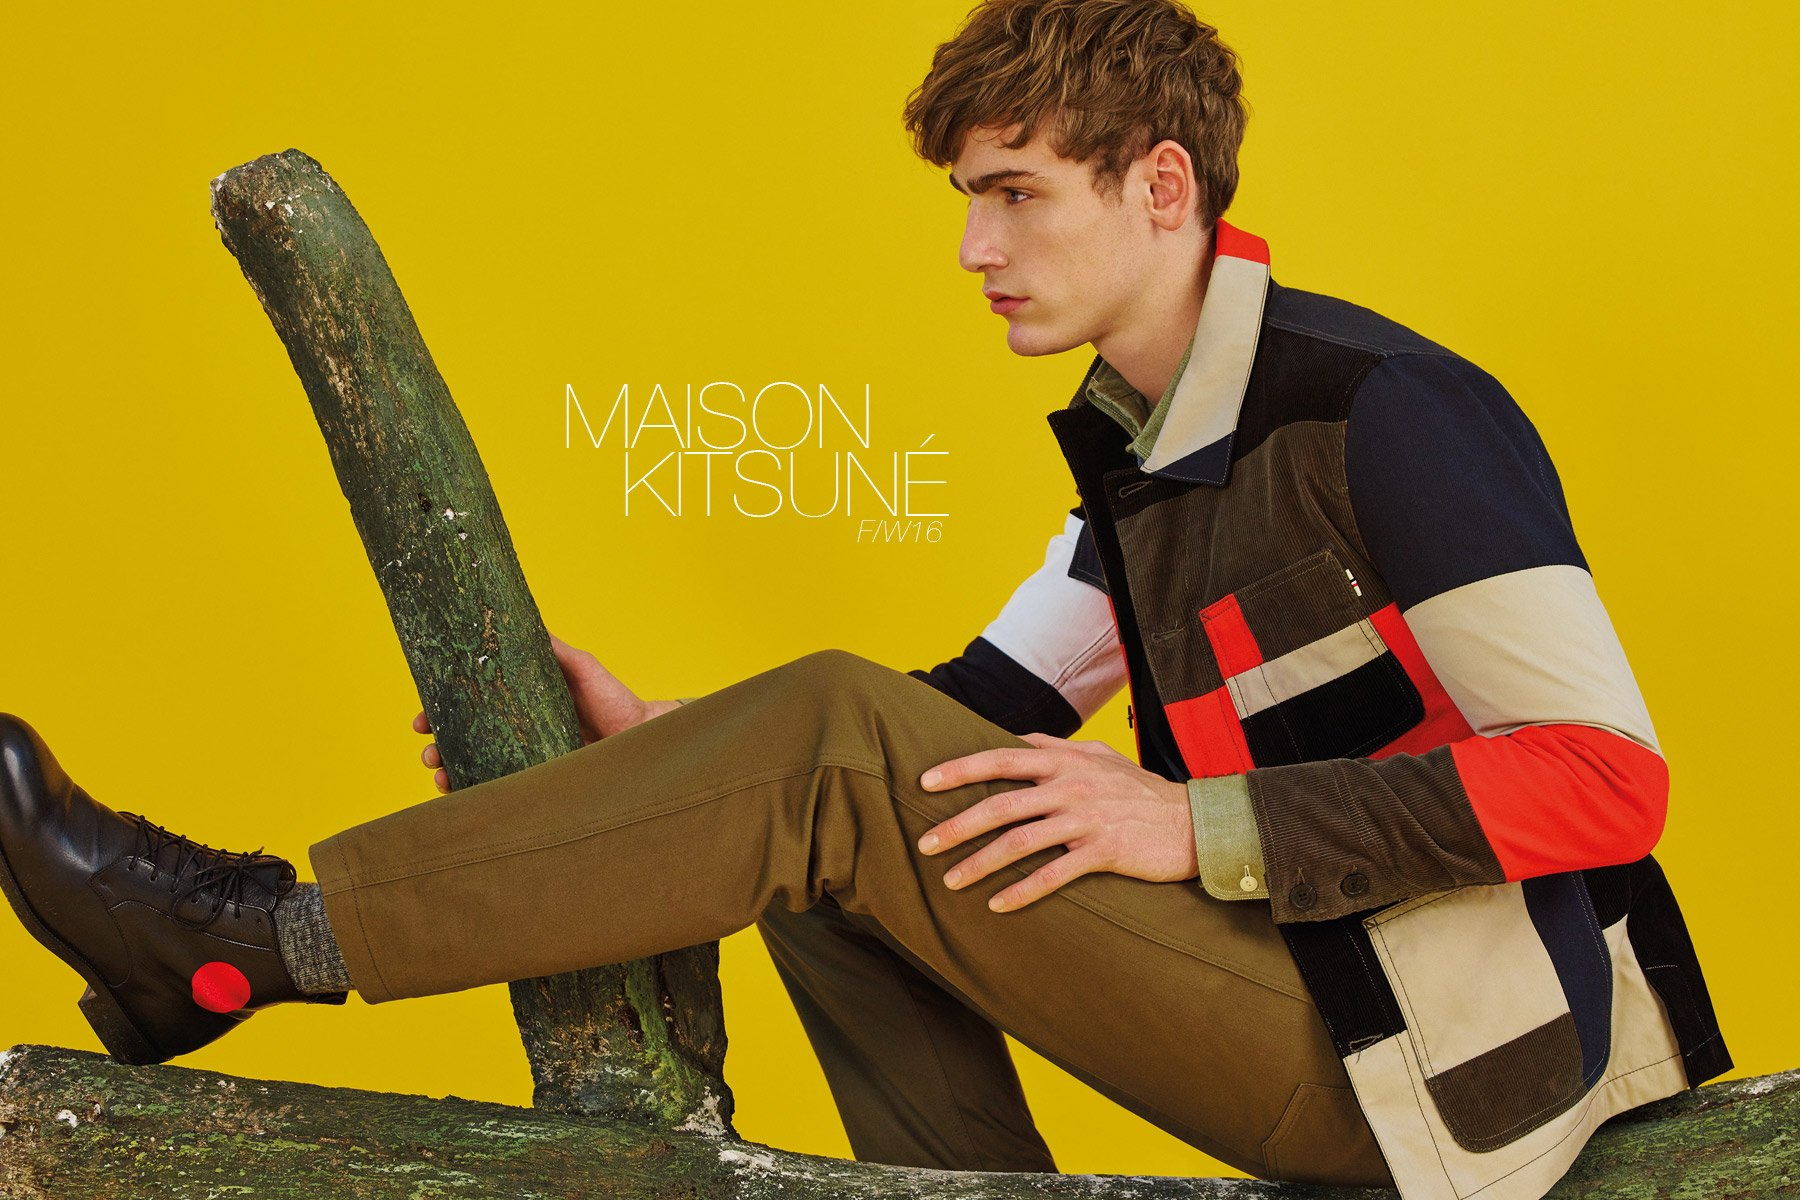 The latest Maison Kitsuné menswear lookbook, for Fall/Winter 2016, by photographer Pierpaolo Ferrari. Ponyboy magazine.